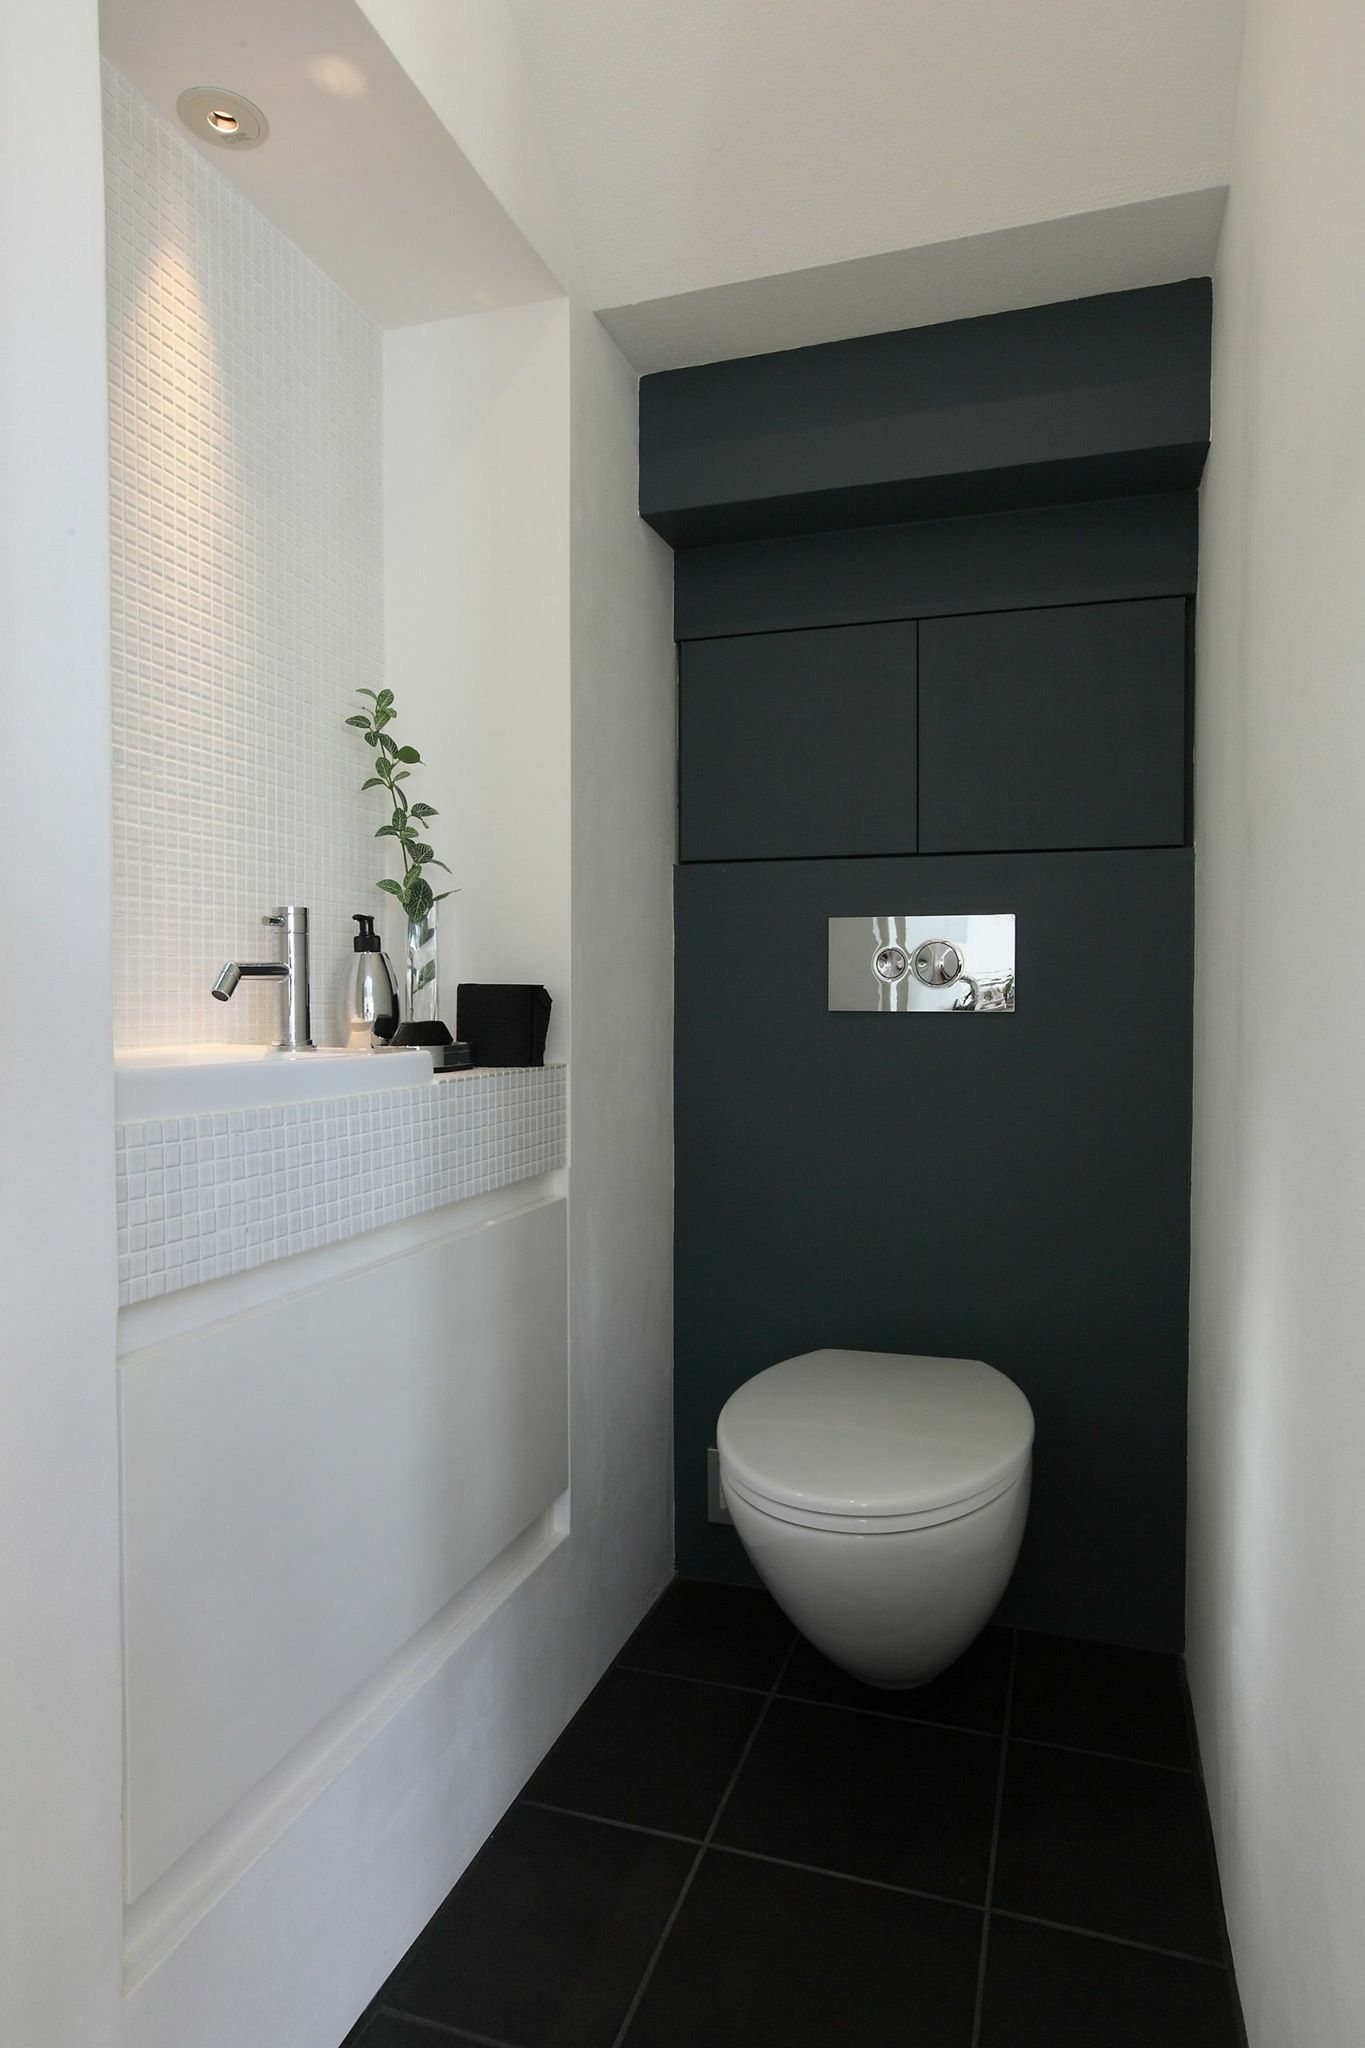 Both 206 208 One Washroom Exactly Like This Toilet Does Not Need To Be Set In But I Bathroom Remodel Designs Small Bathroom Remodel Designs Small Toilet Room